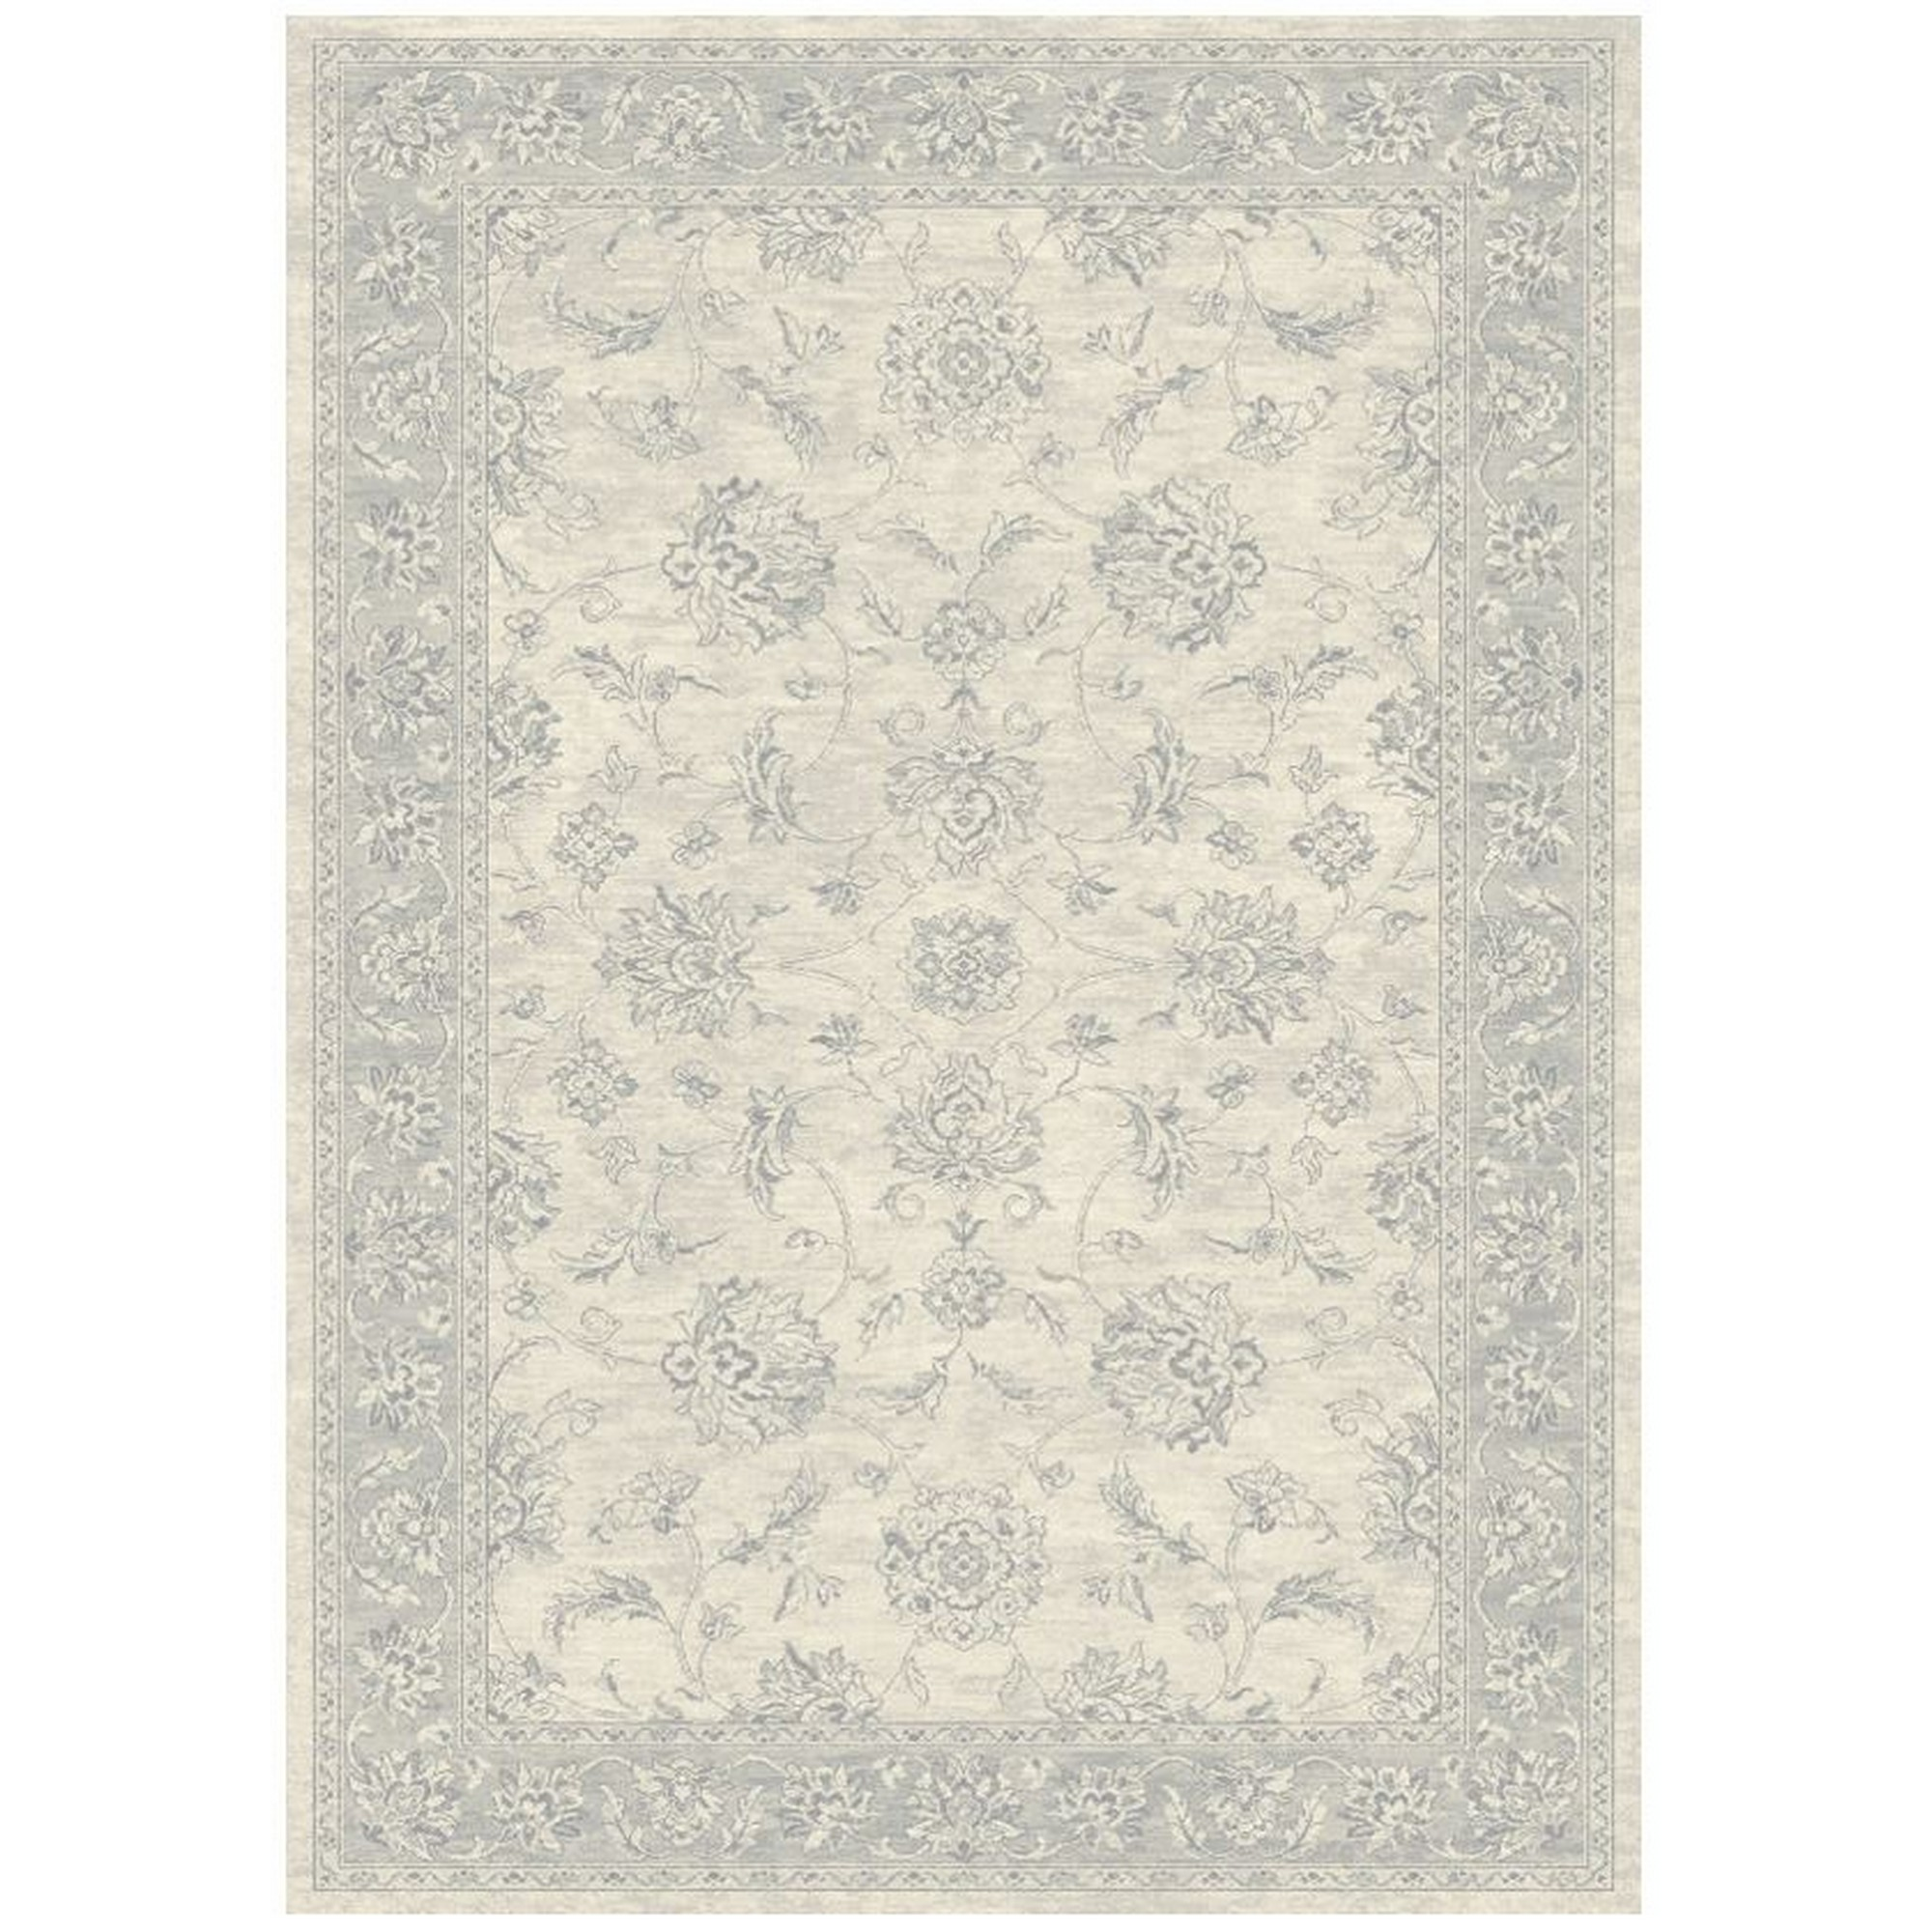 Echo Persian Rugs EC09 in Cream